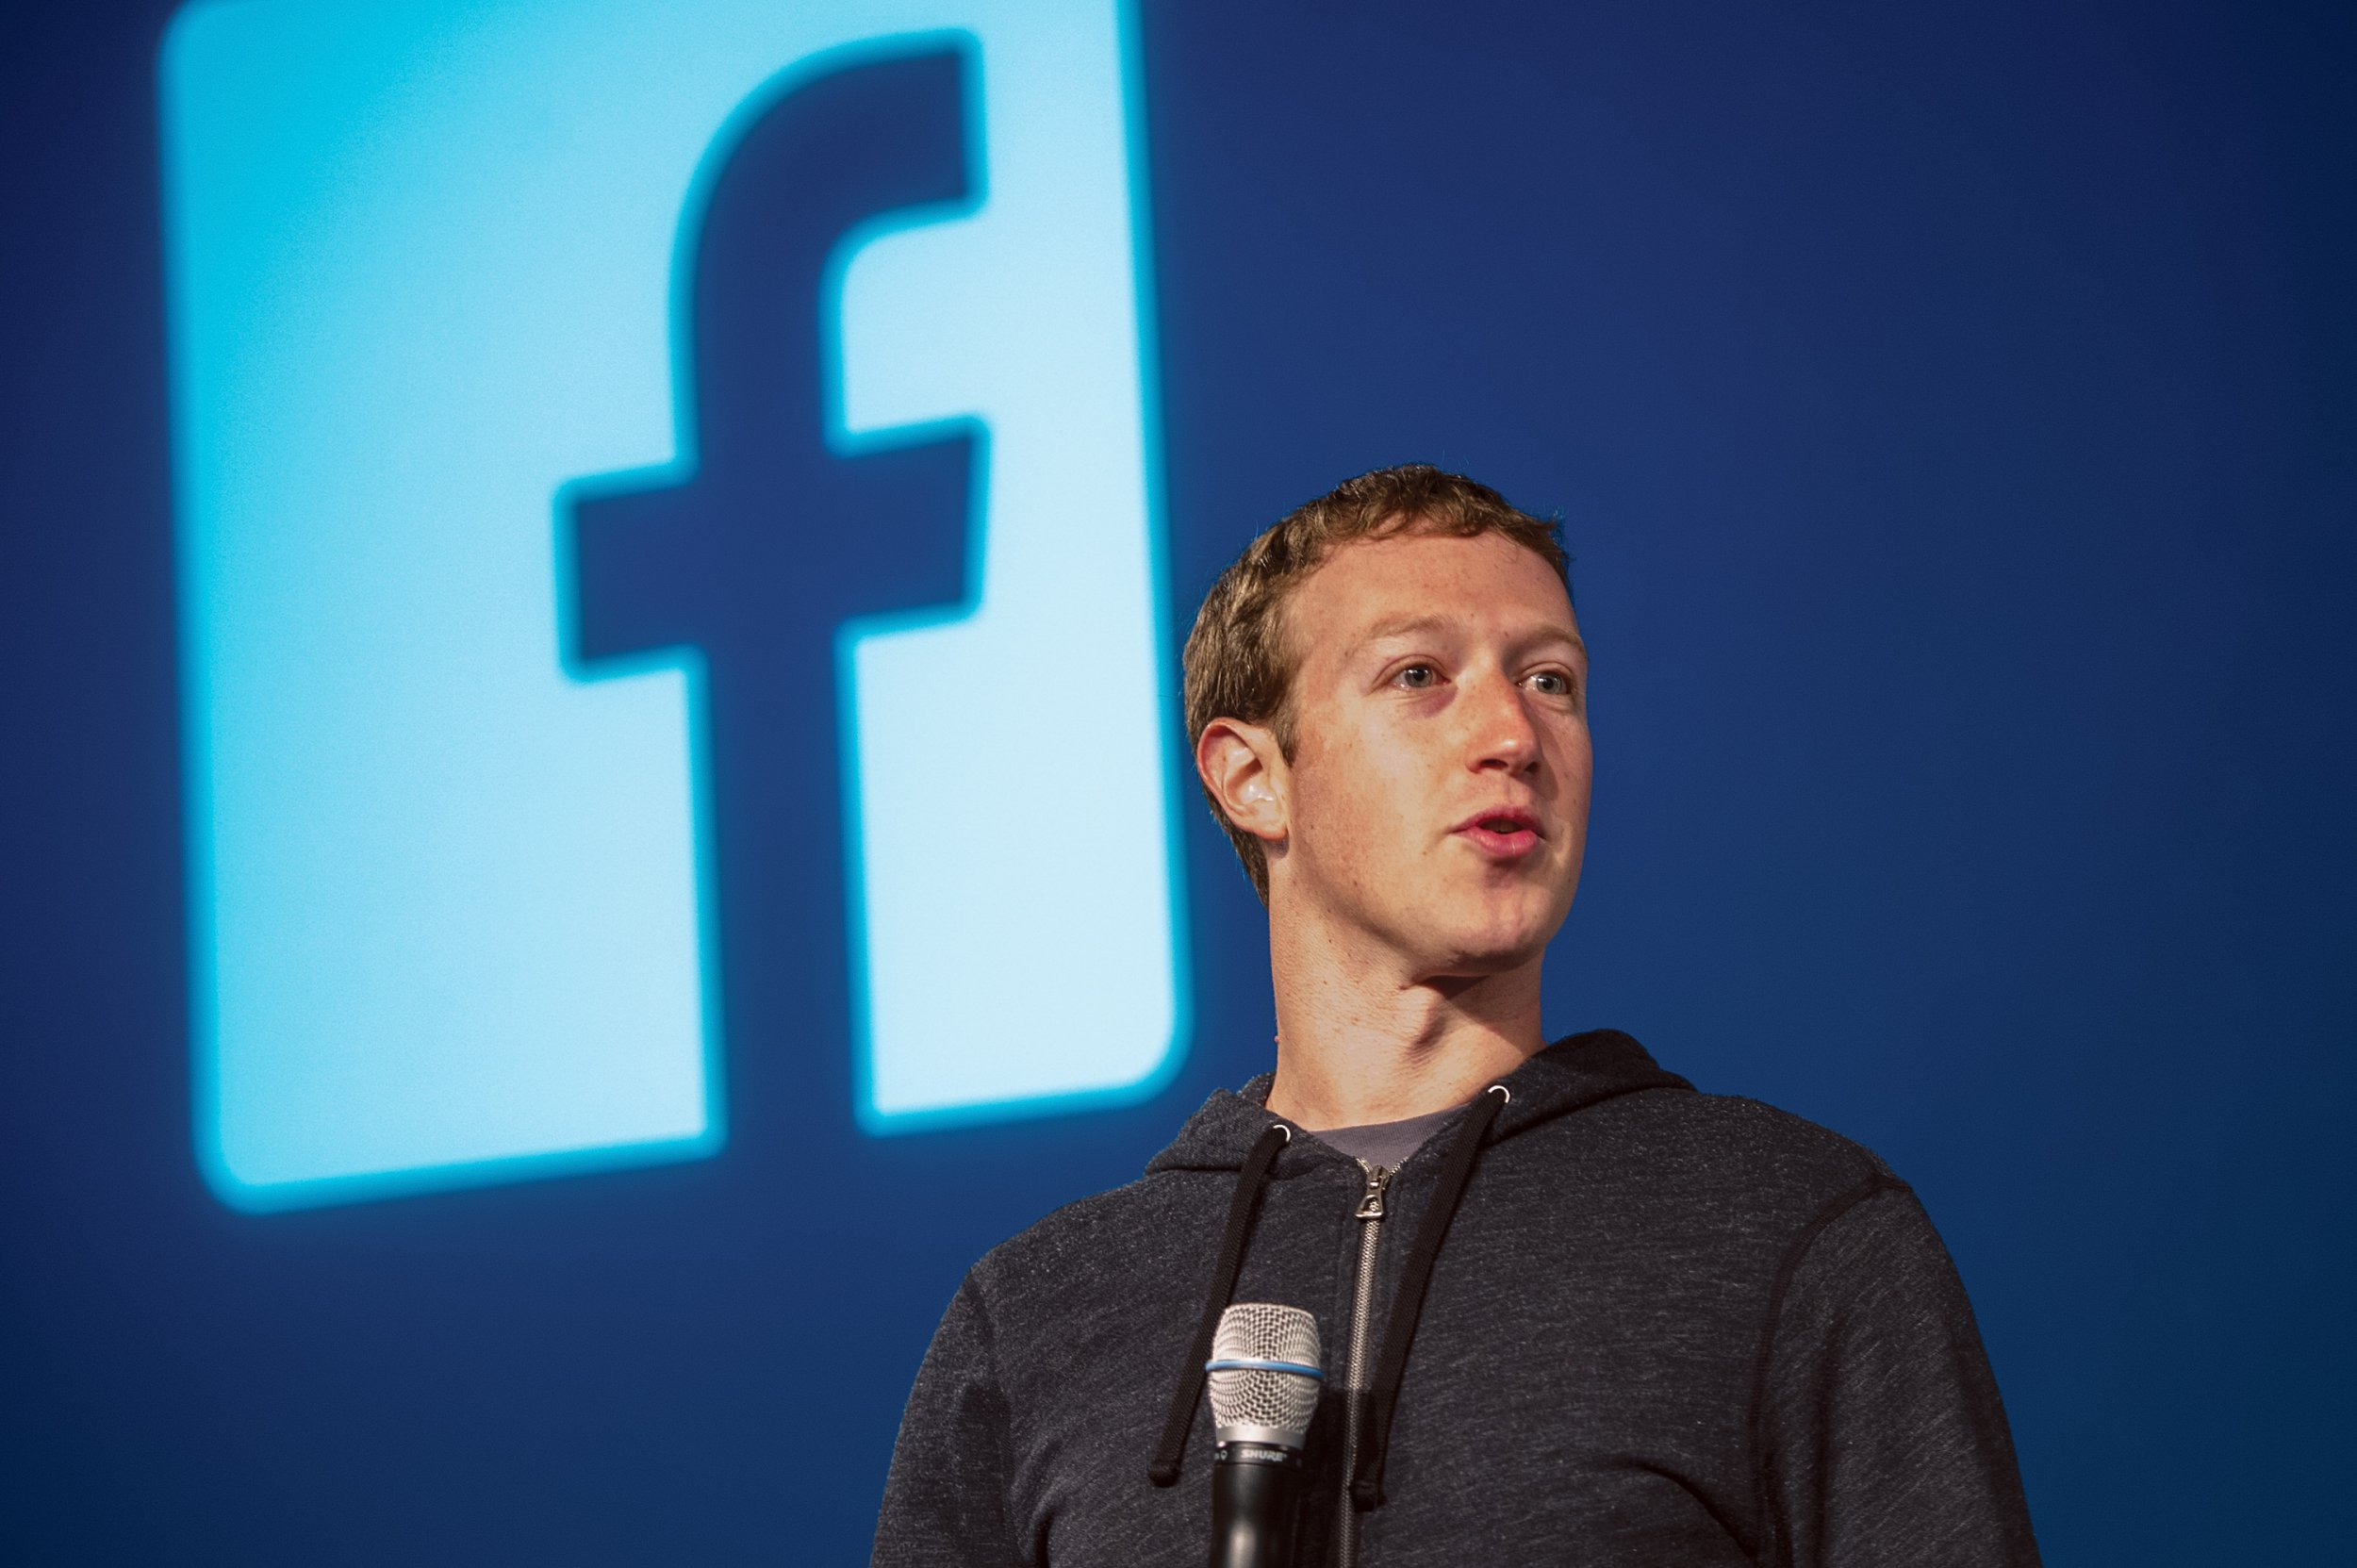 When was Facebook launched and who was behind it with Mark Zuckerberg?